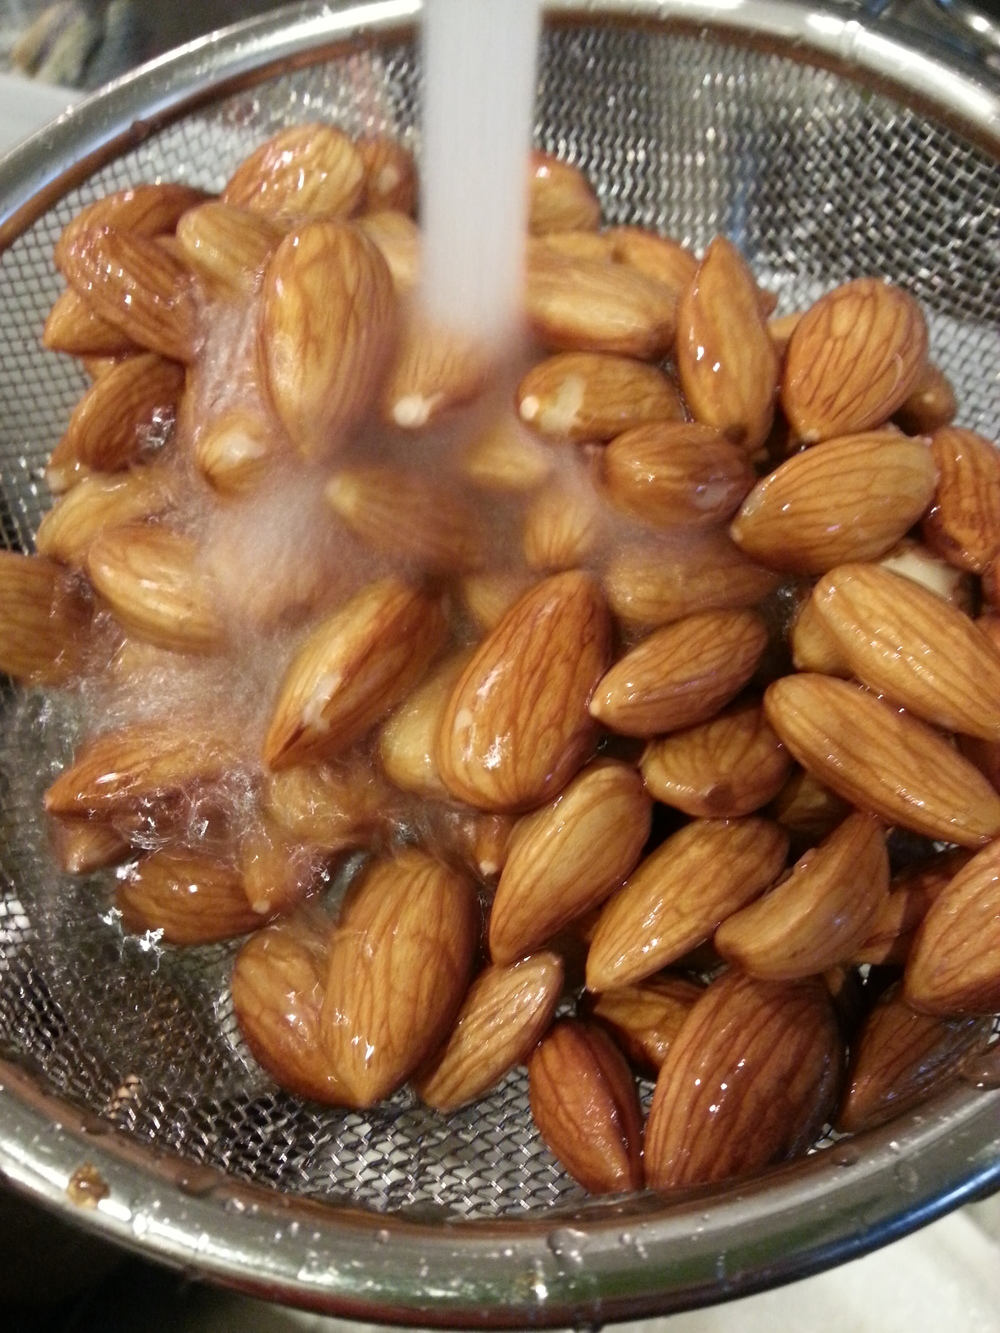 You start by soaking a cup of raw almonds in 3 cups of water for 6-8 hours, keeping the container in the refrigerator. When you are ready to make the nut milk, discard the soaking water and rinse the almonds well. The soaking process removes a natural occurring layer on the outside of the nuts that, if eating without removing, hinders your body from absorbing all the goodness those nuts have to offer. It's not the end of the world if you don't soak your nuts but why not get all the benefits instead of just some?